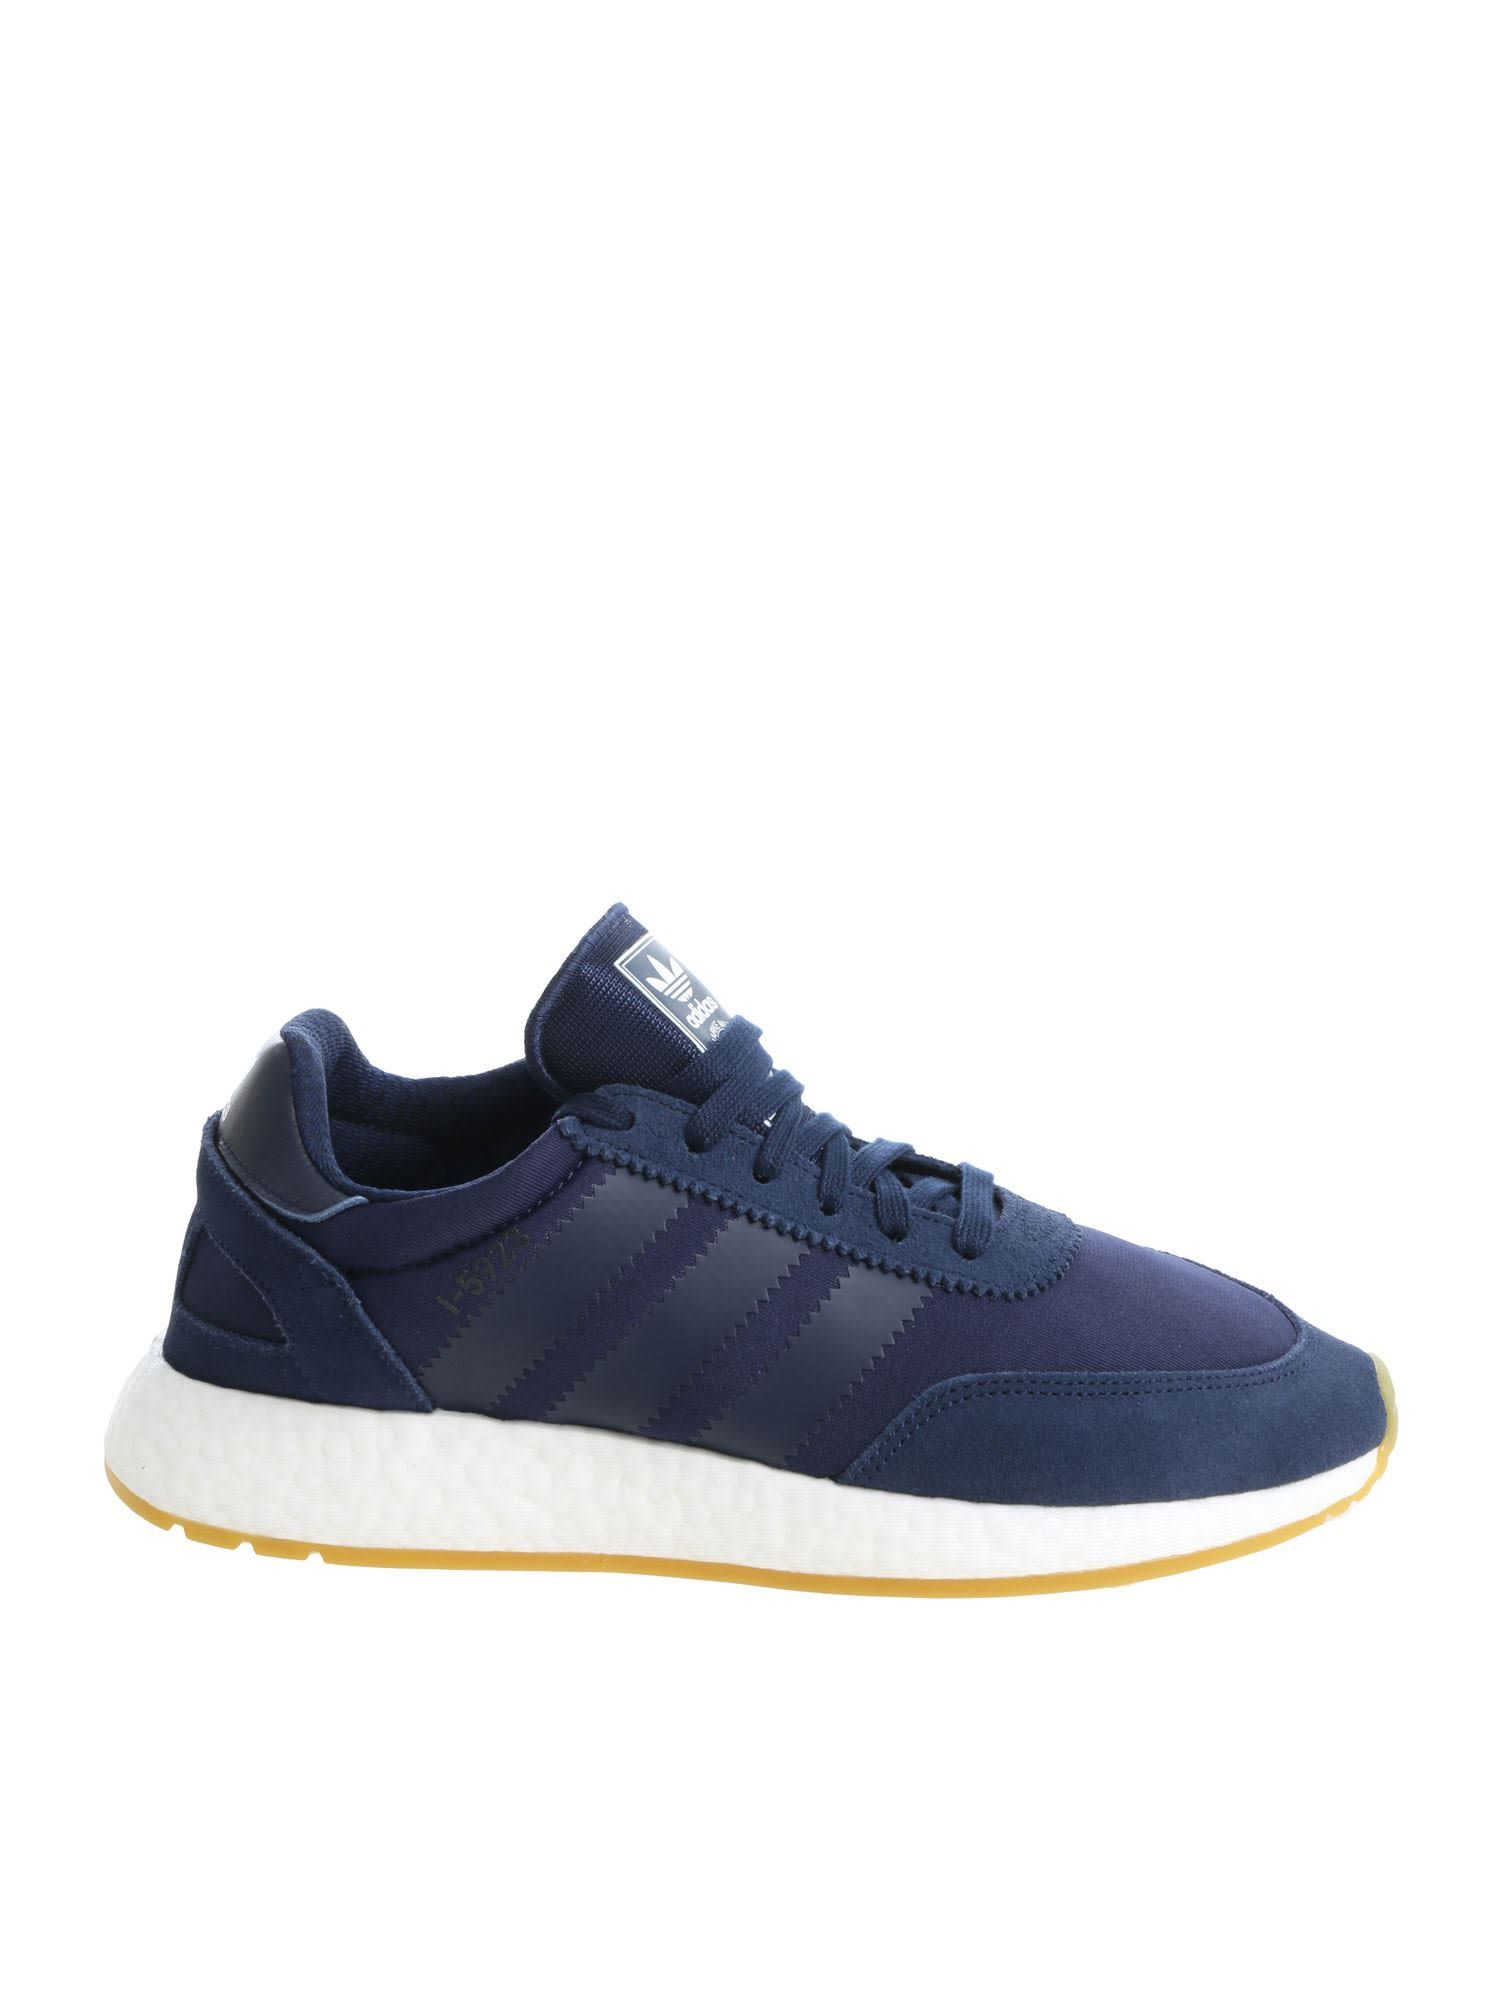 02f5acfe99b ADIDAS ORIGINALS I-5923 SNEAKERS. #adidasoriginals #shoes | Adidas ...